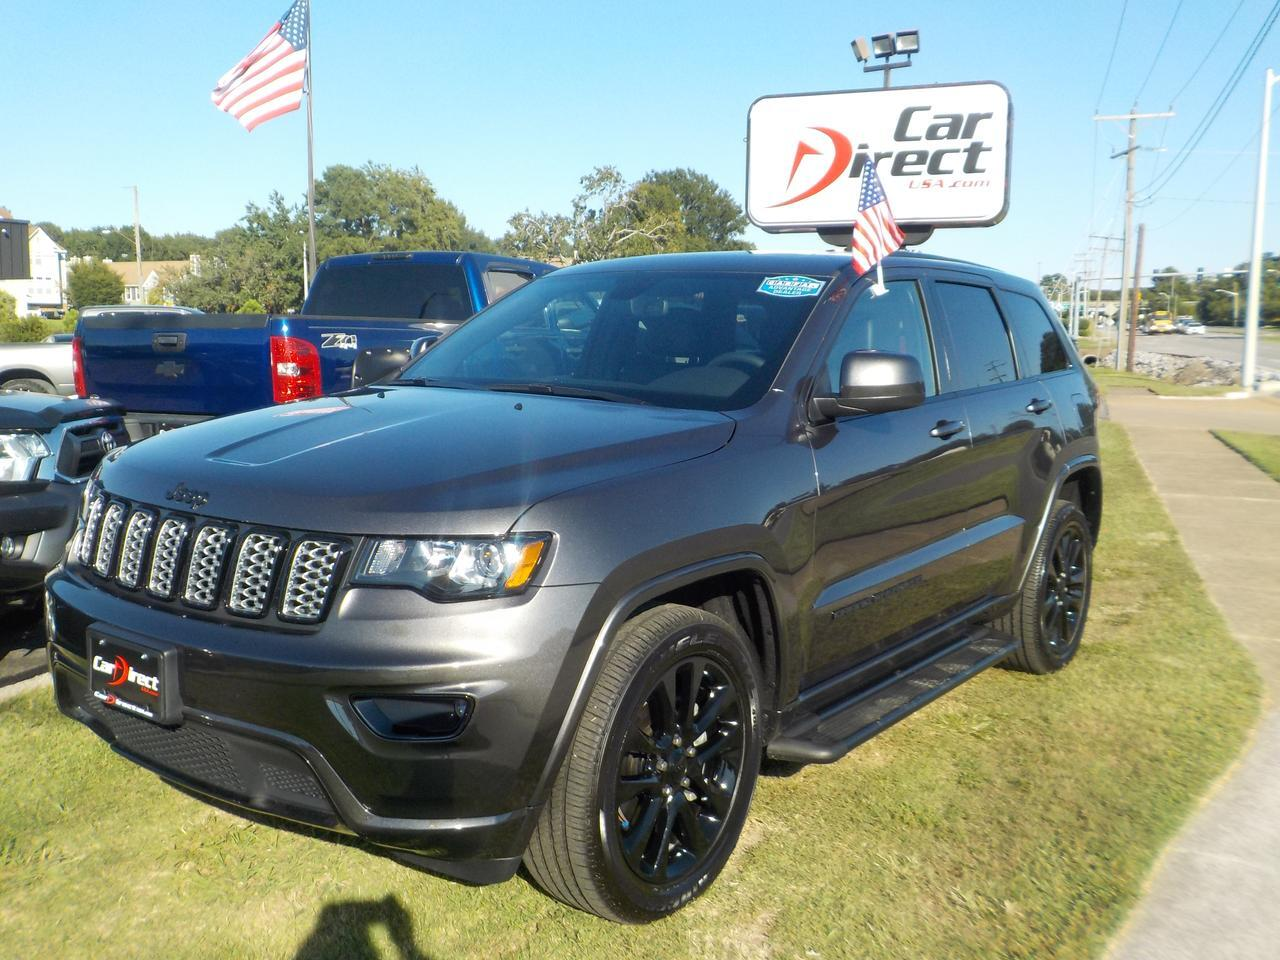 2019 JEEP GRAND CHEROKEE ALTITUDE 4X4, ONLY 6K MILES! BRAND NEW CONDITION AND STILL UNDER FACTORY WARRANTY, MUST SELL NOW!